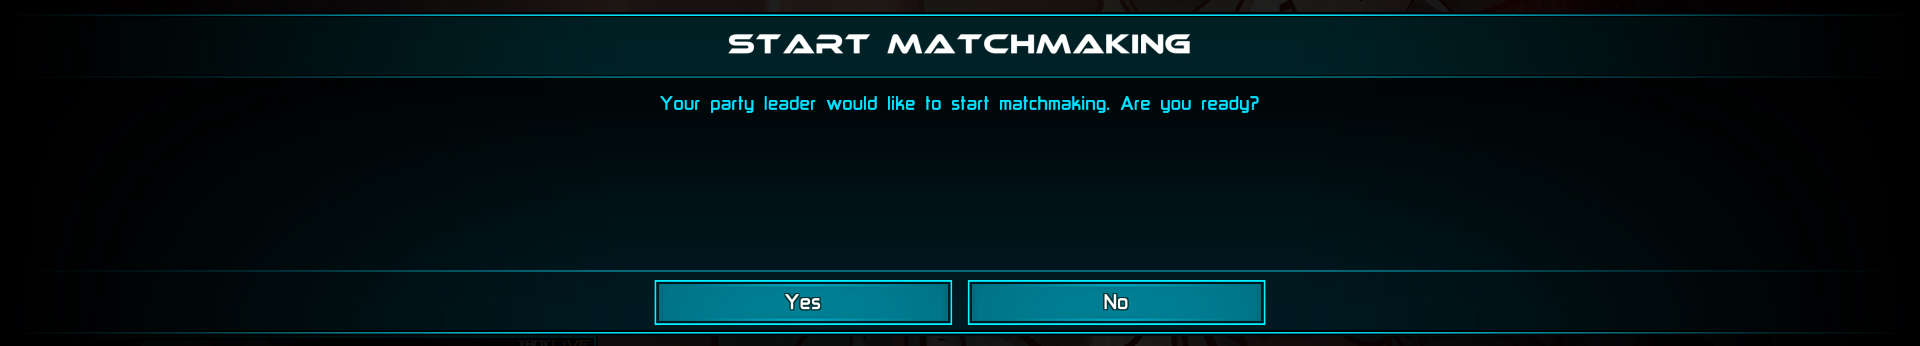 partymatchmaking_part